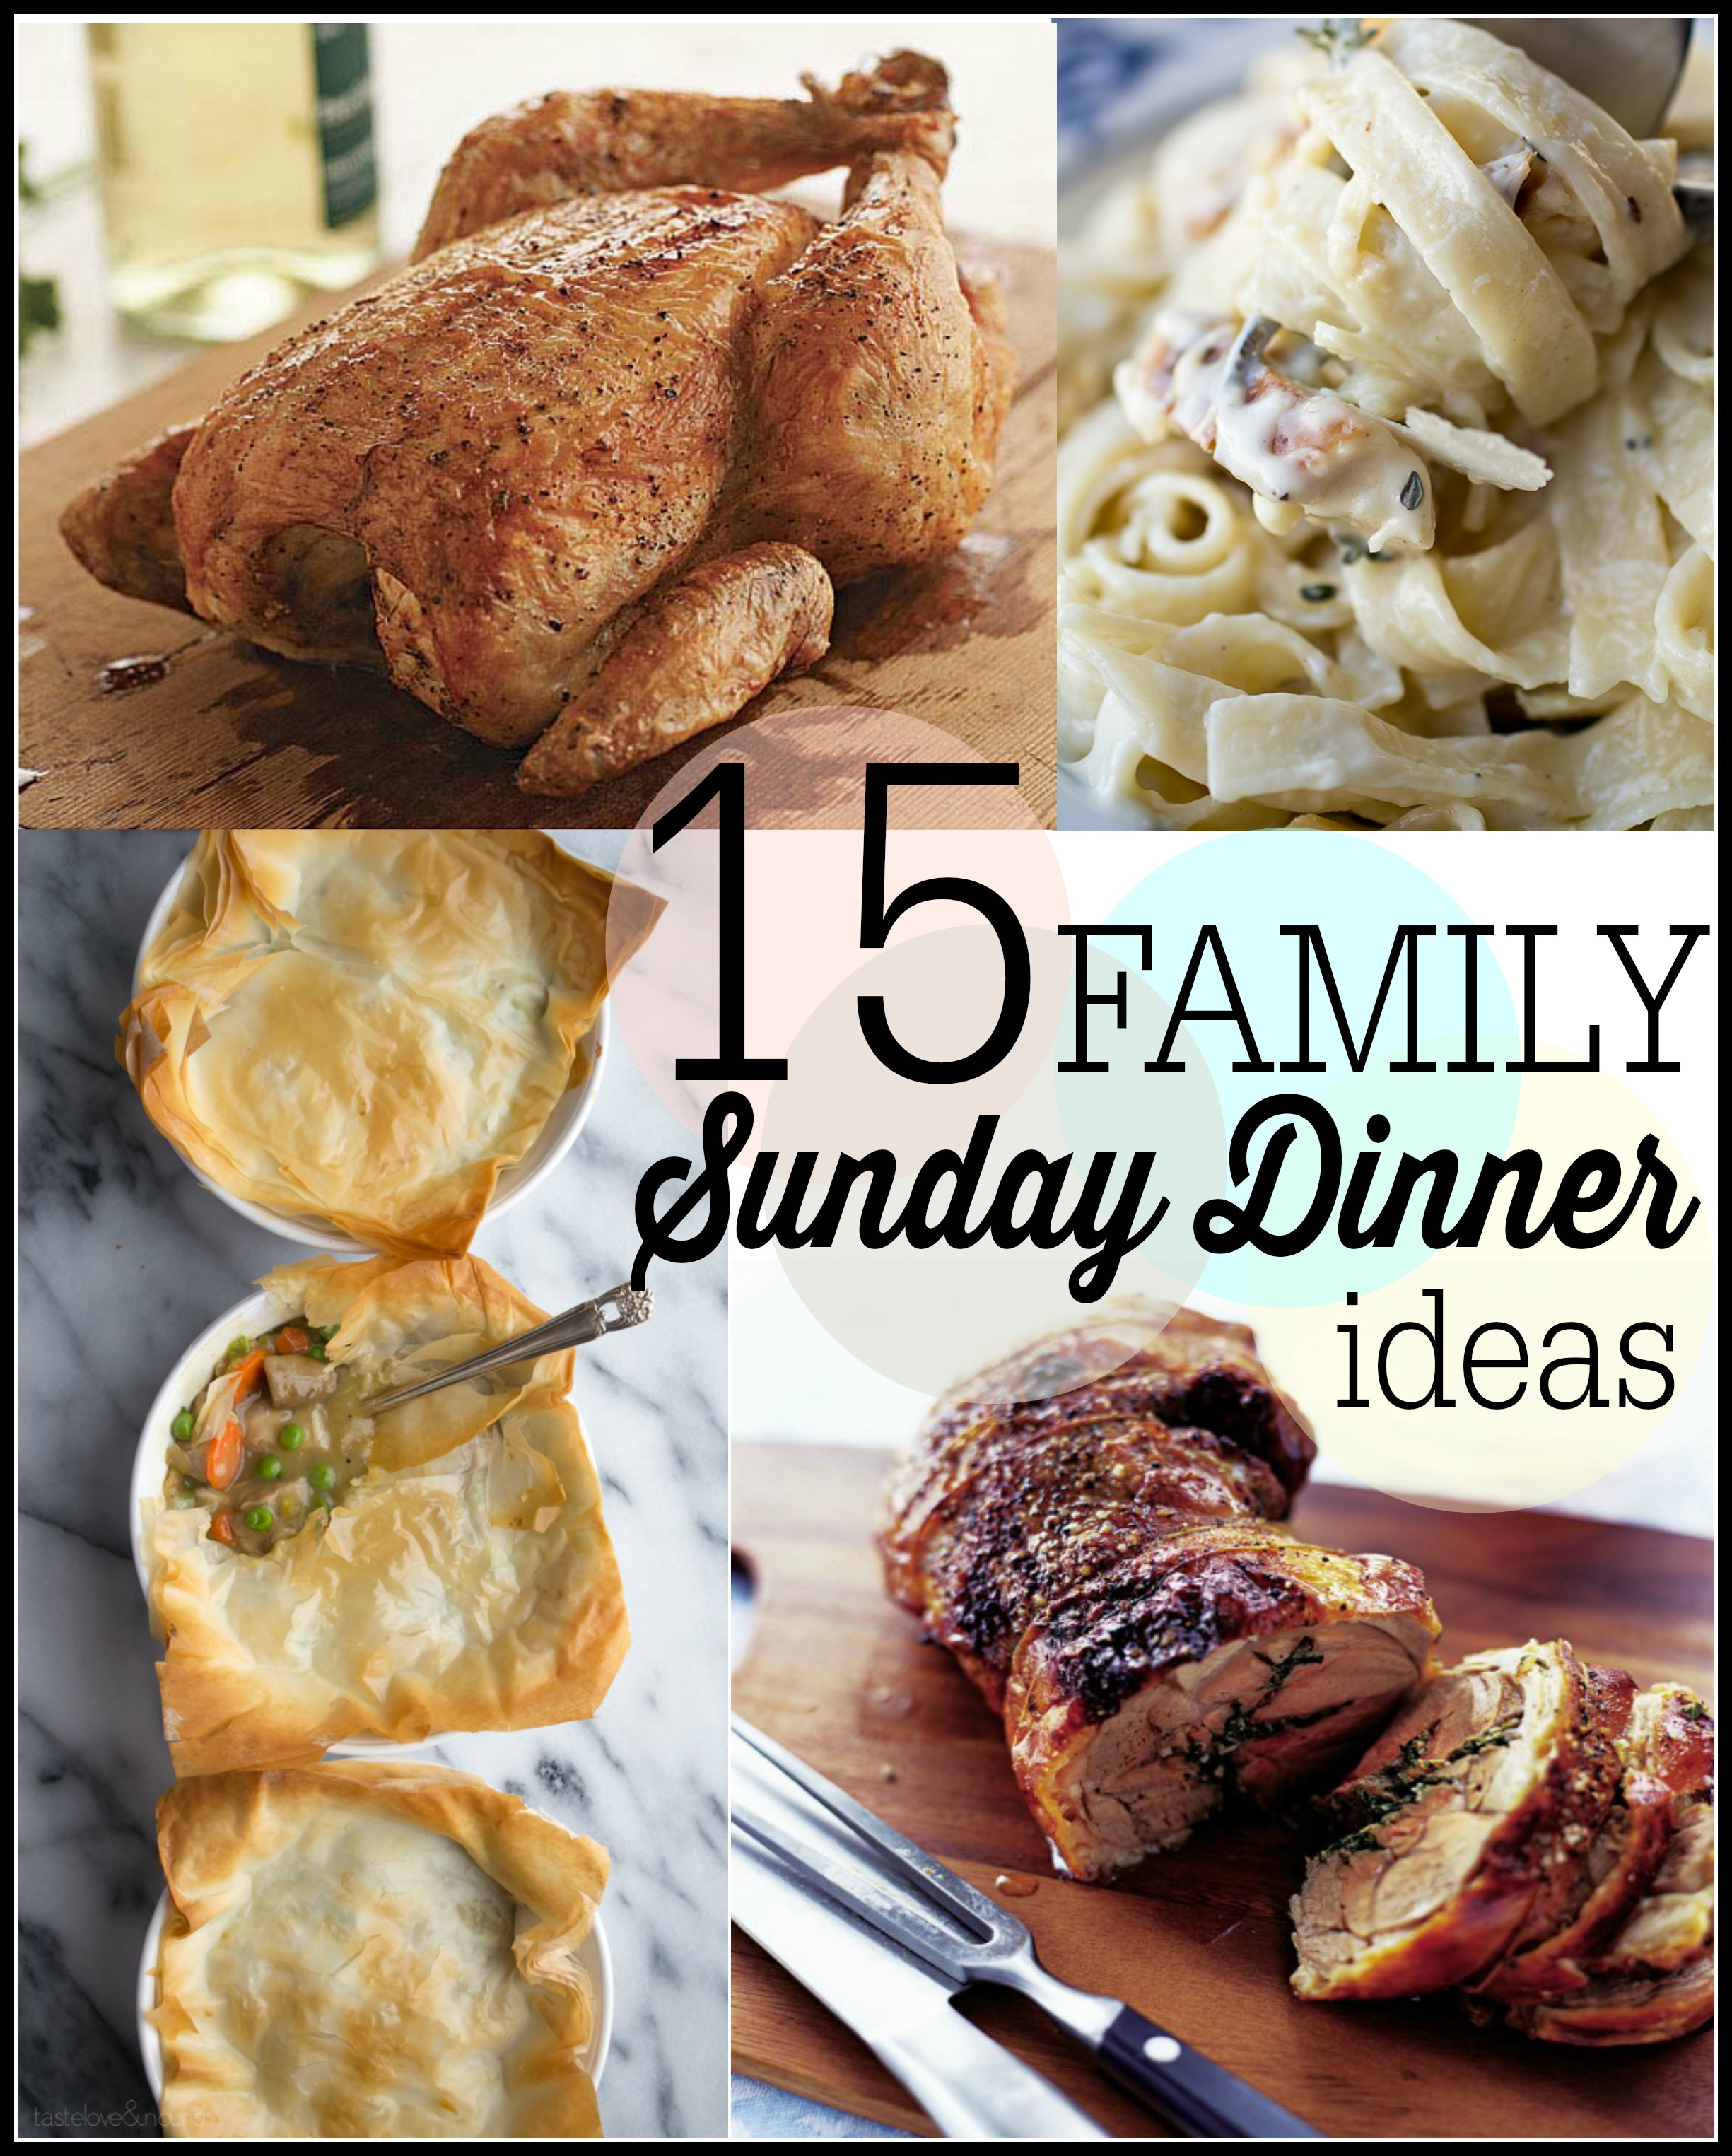 15 sunday family dinner ideas - first home love life